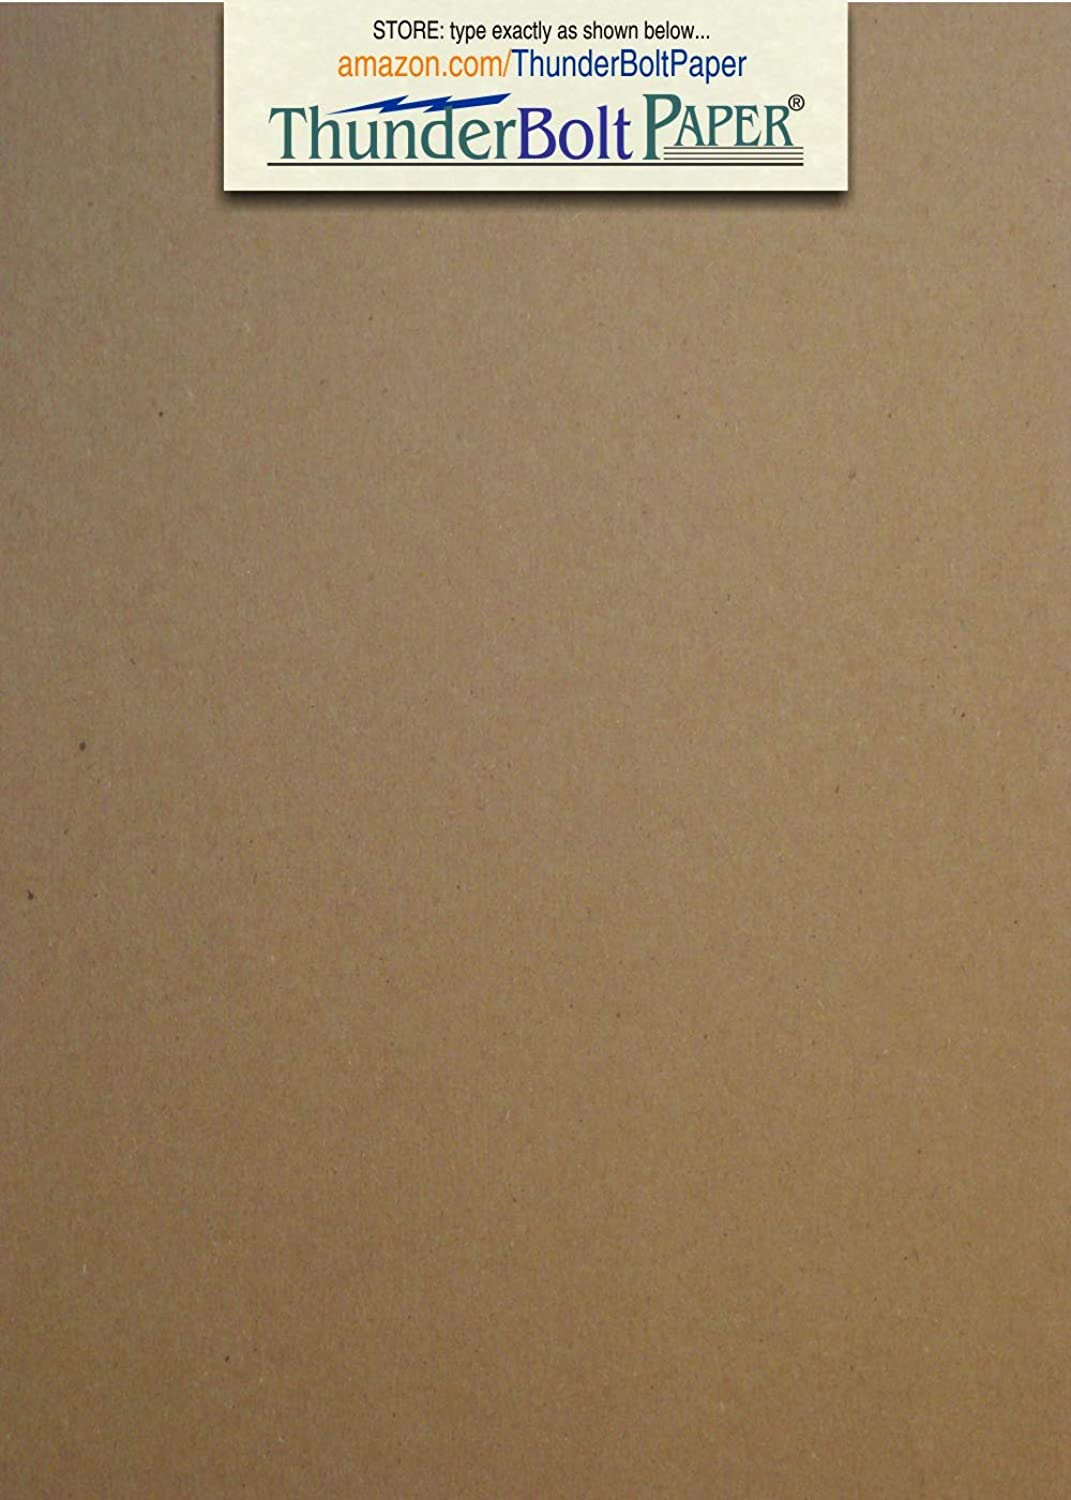 15 Sheets Brown Chipboard 80 Point Extra Thick 5.5 X 8.5 Inches Half Letter Size .080 Caliper XX Heavy Cardboard as Thick as 20 Sheets 20# Paper